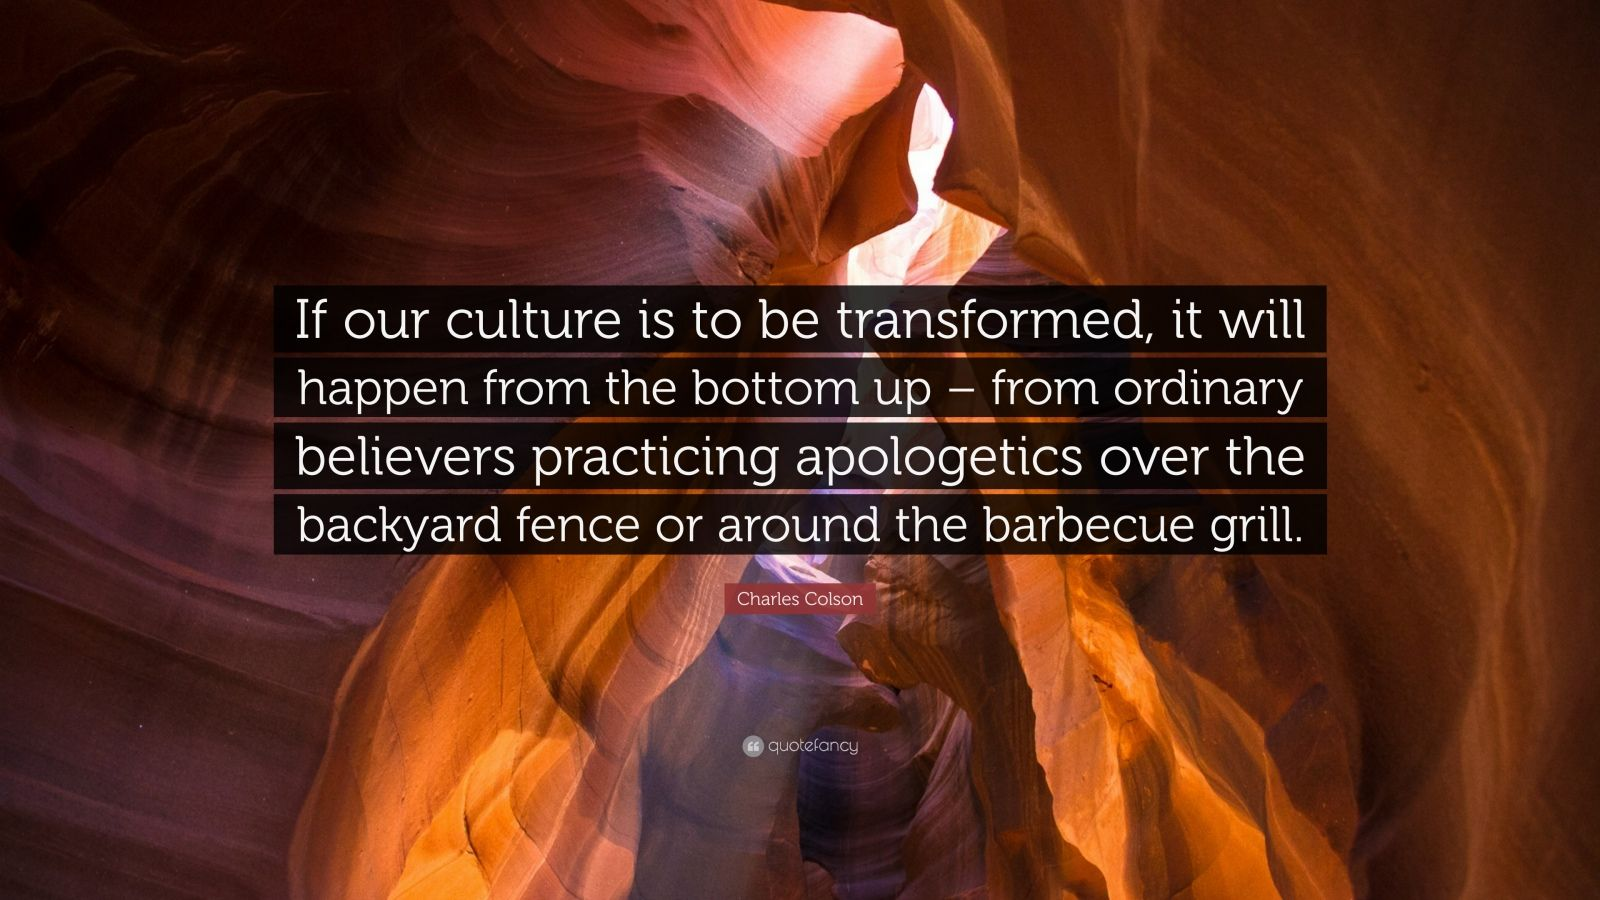 """Charles Colson Quote: """"If our culture is to be transformed, it will happen from the bottom up – from ordinary believers practicing apologetics over the backyard fence or around the barbecue grill."""""""